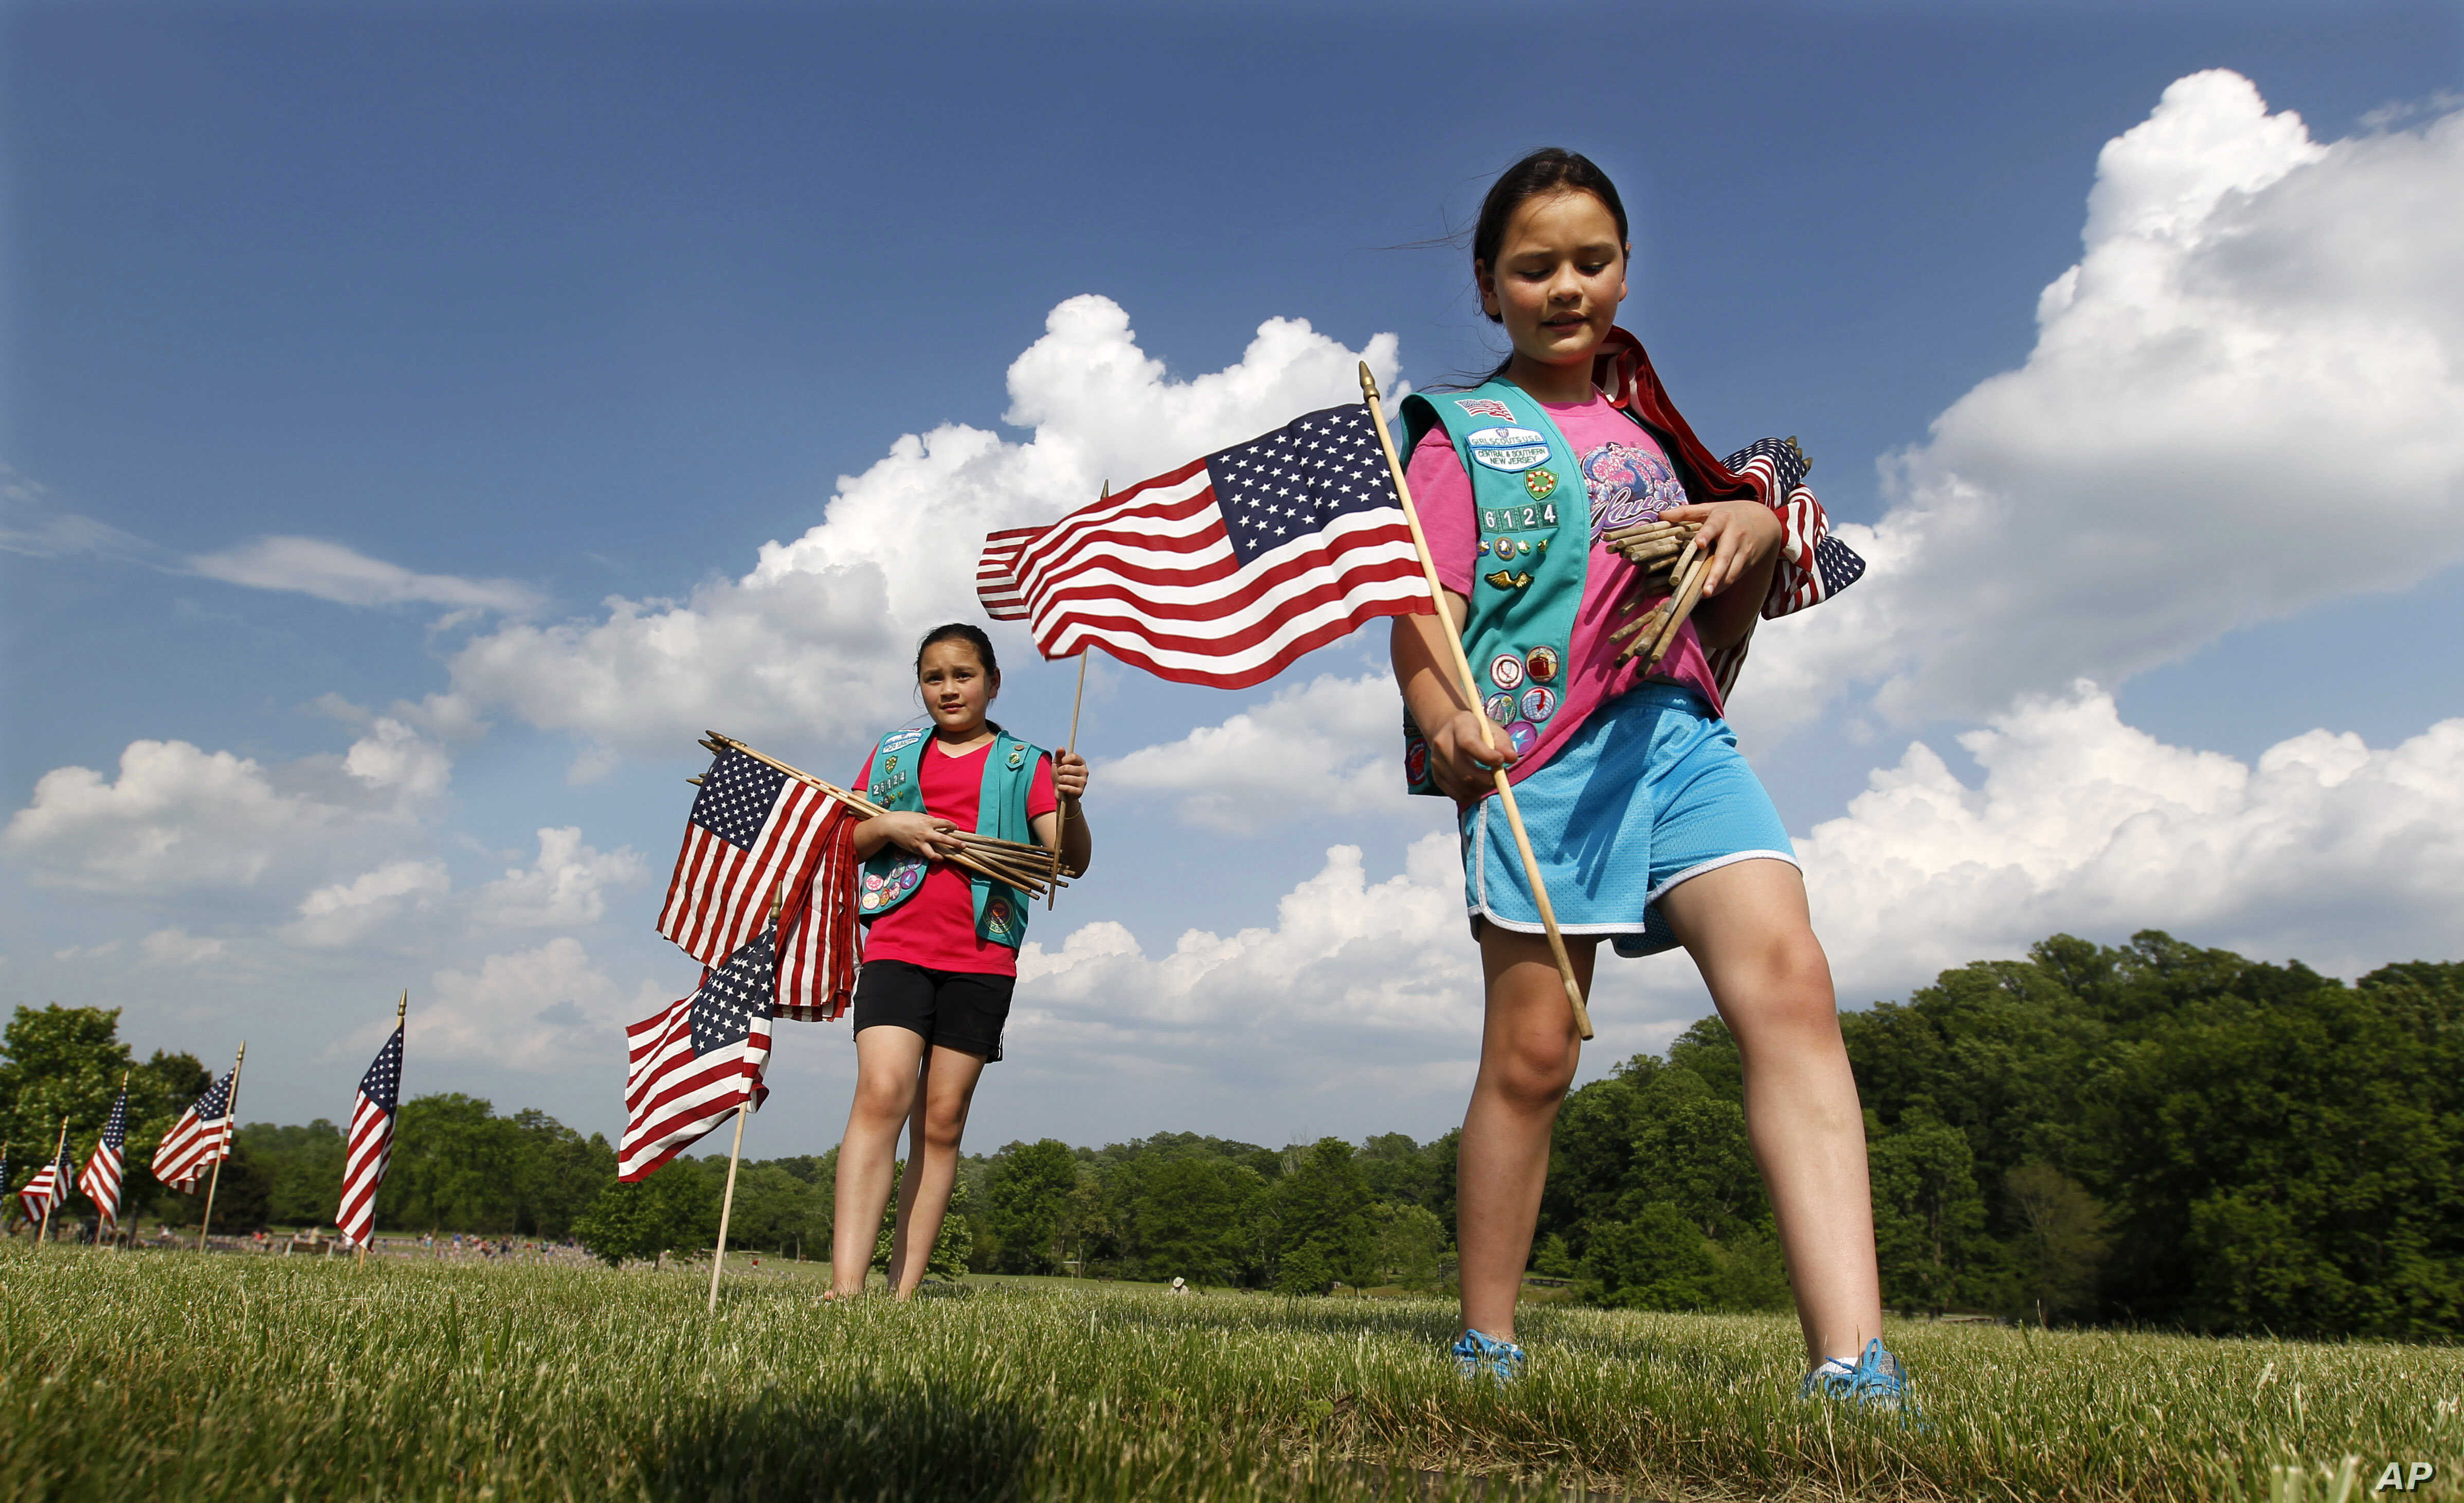 Girl Scouts Sarah and Megan Lontoc, 10, place flags as the scouts placed thousands of flags on veteran's graves at Brig. Gen. William C. Doyle Veterans Memorial Cemetery in honor of Memorial Day, Friday, May 27, 2016, in Wrightstown N.J. (AP Photo)